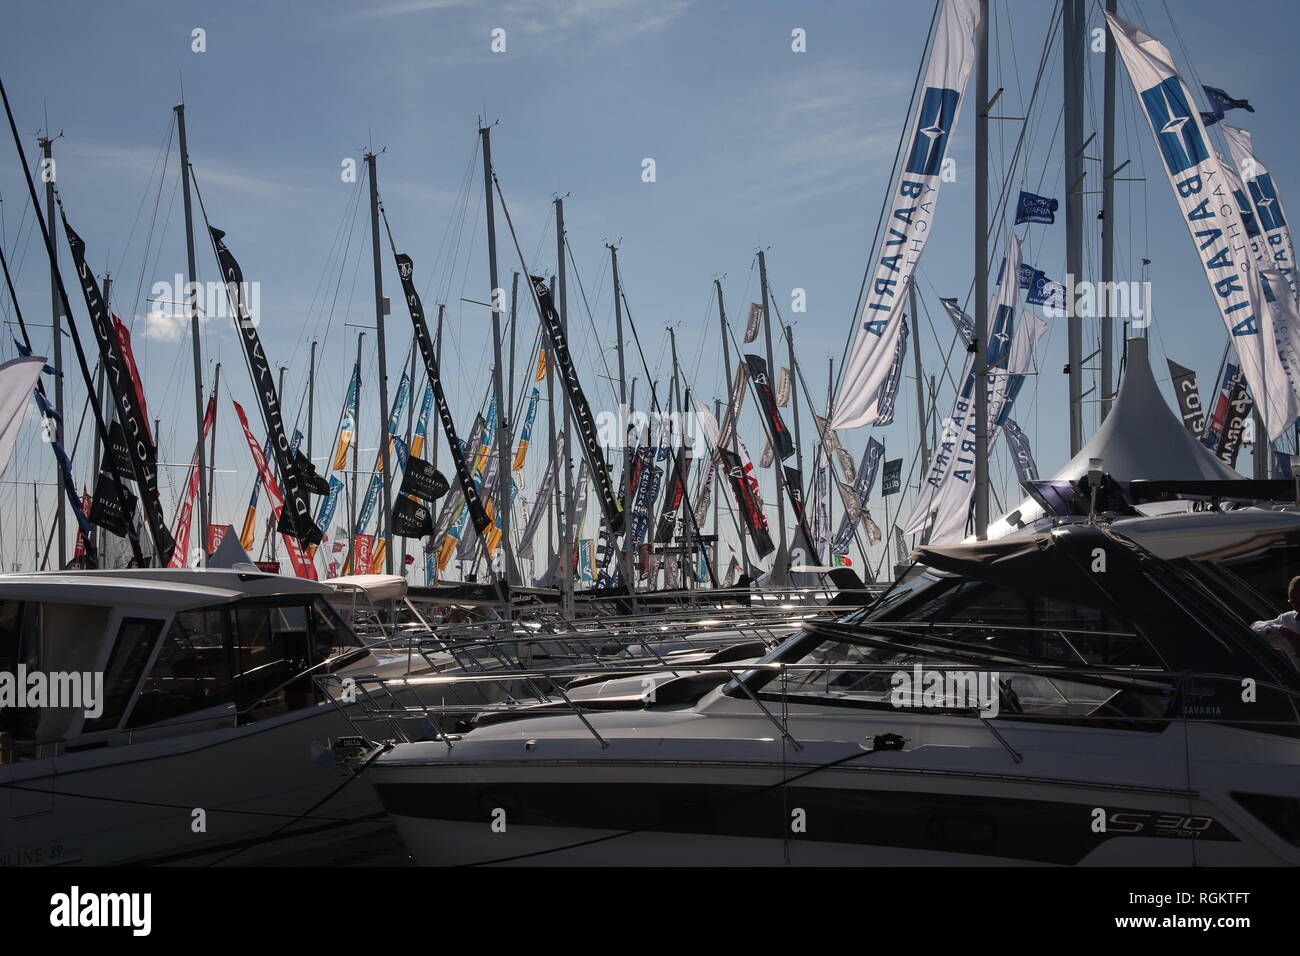 Boat Show Stock Photos Boat Show Stock Images Alamy